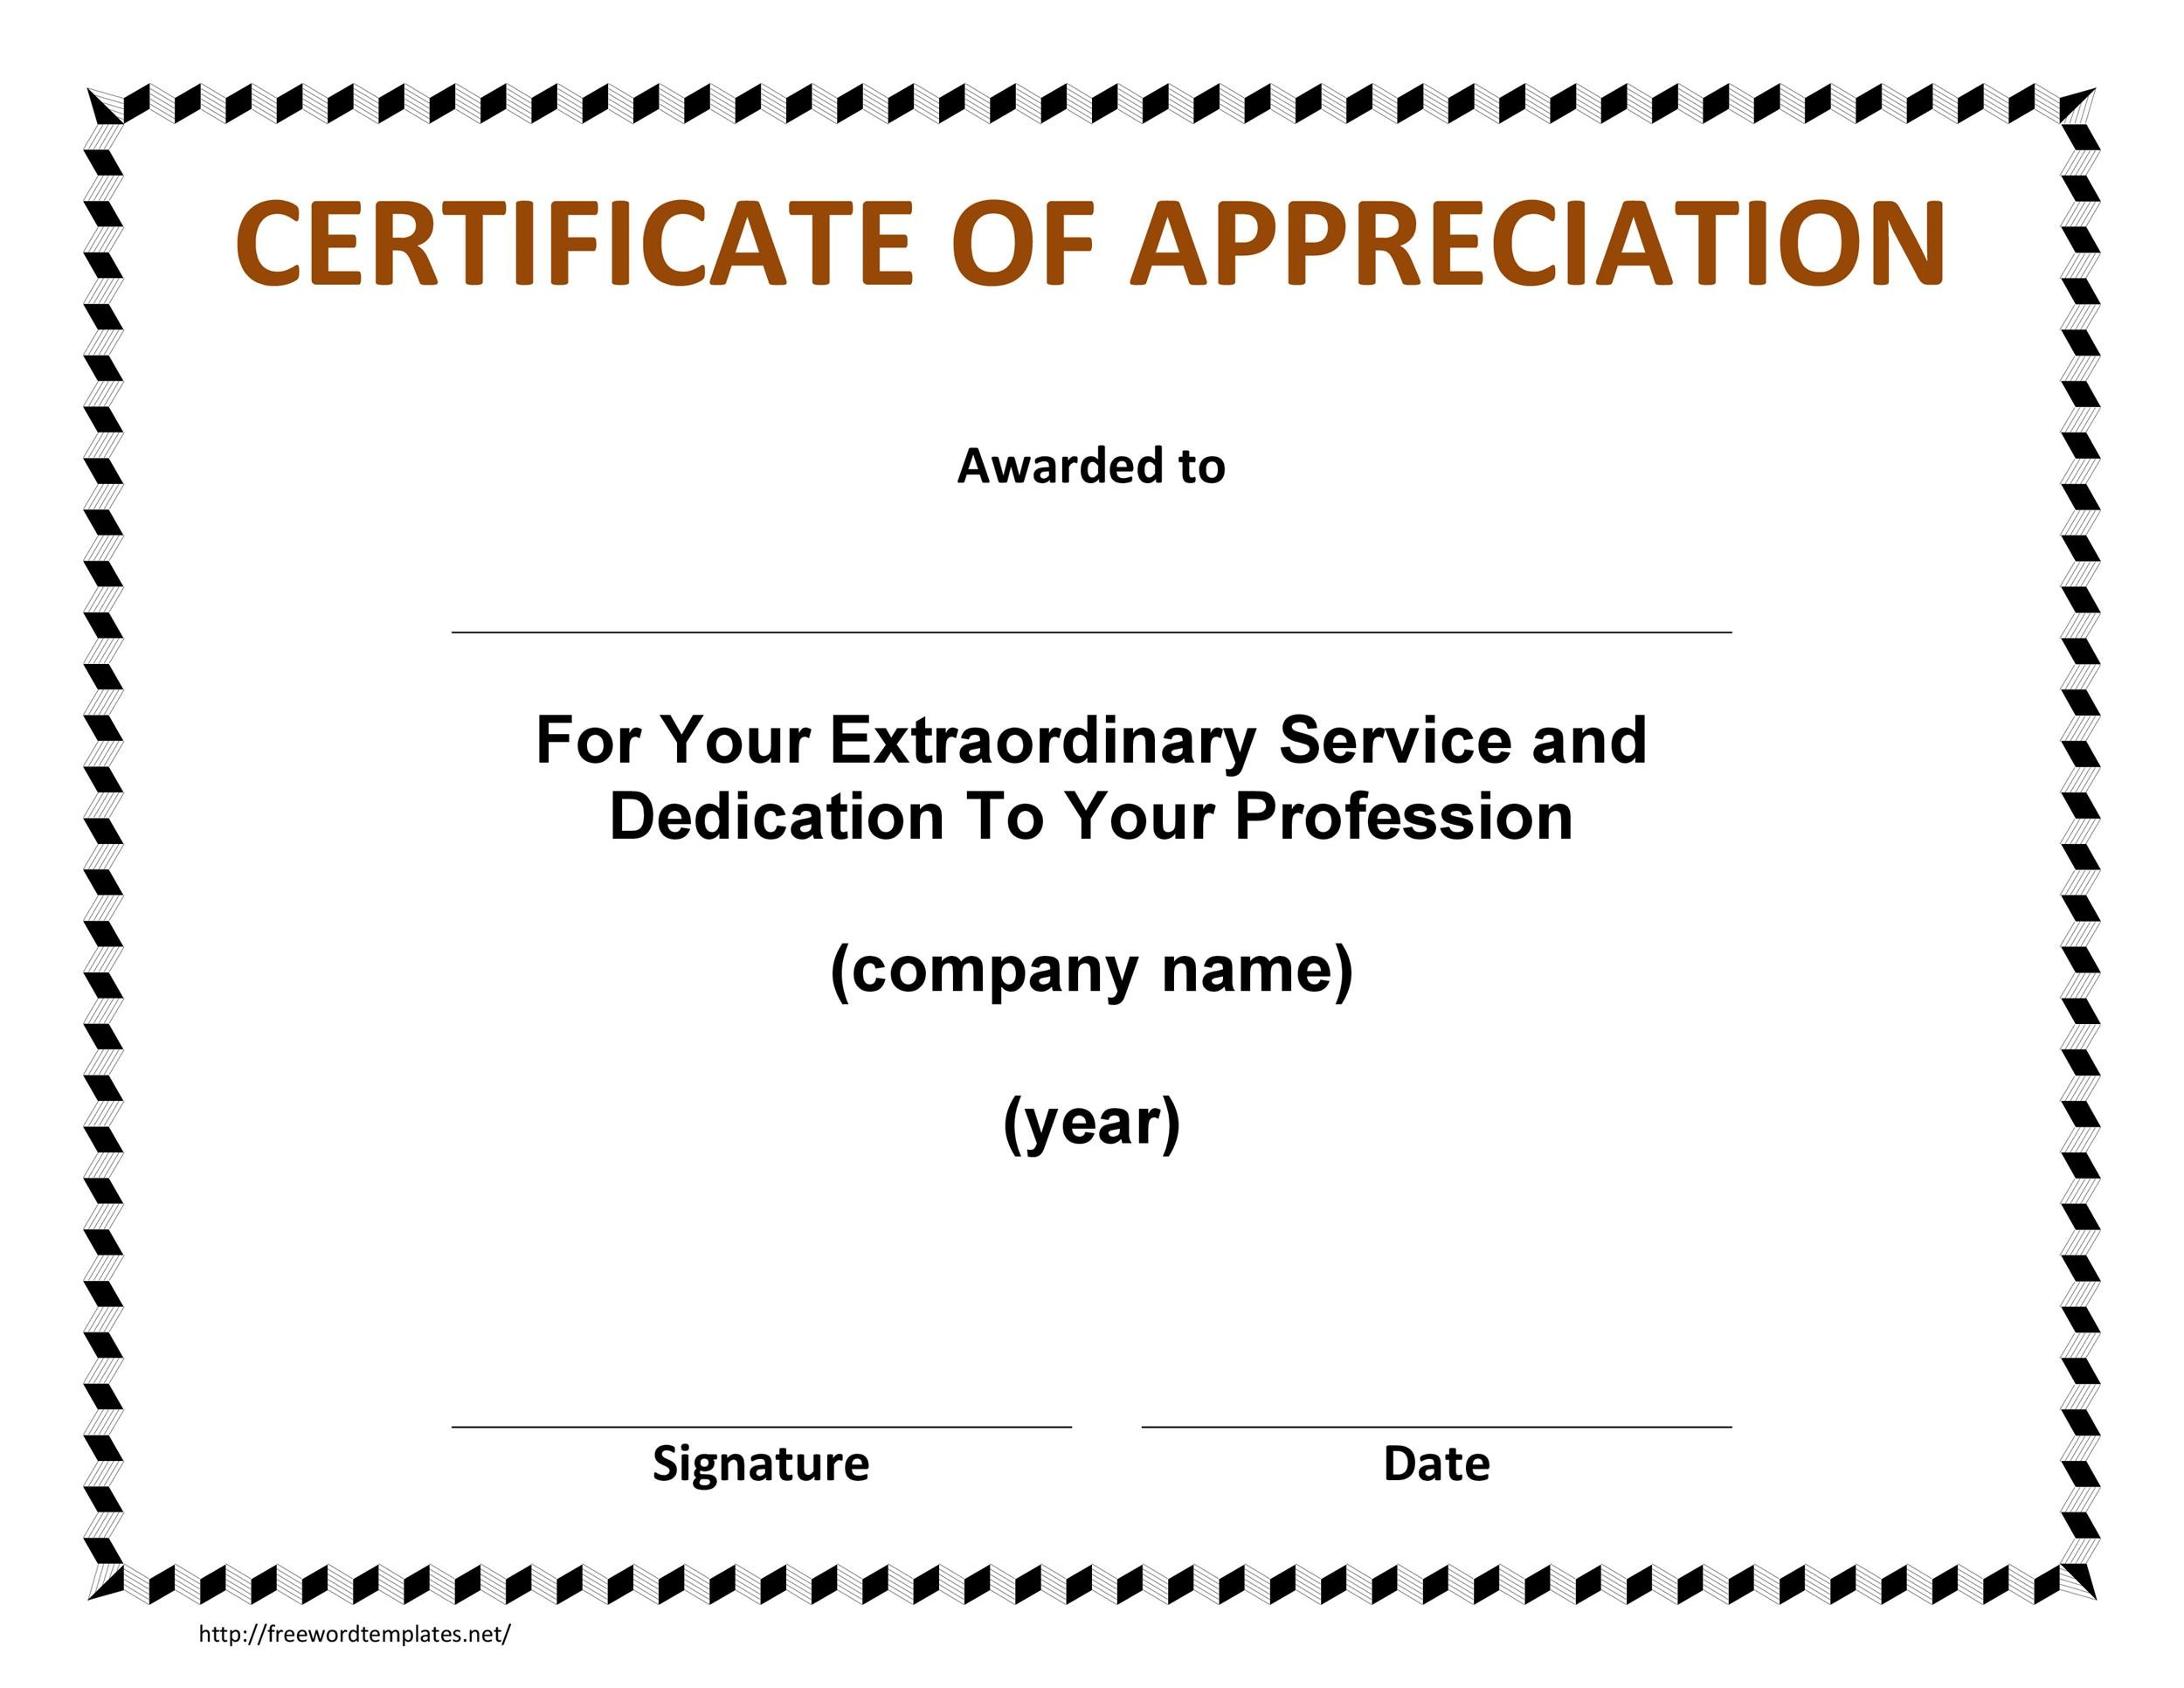 30 free certificate of appreciation templates and letters printable certificate of appreciation 04 yadclub Images